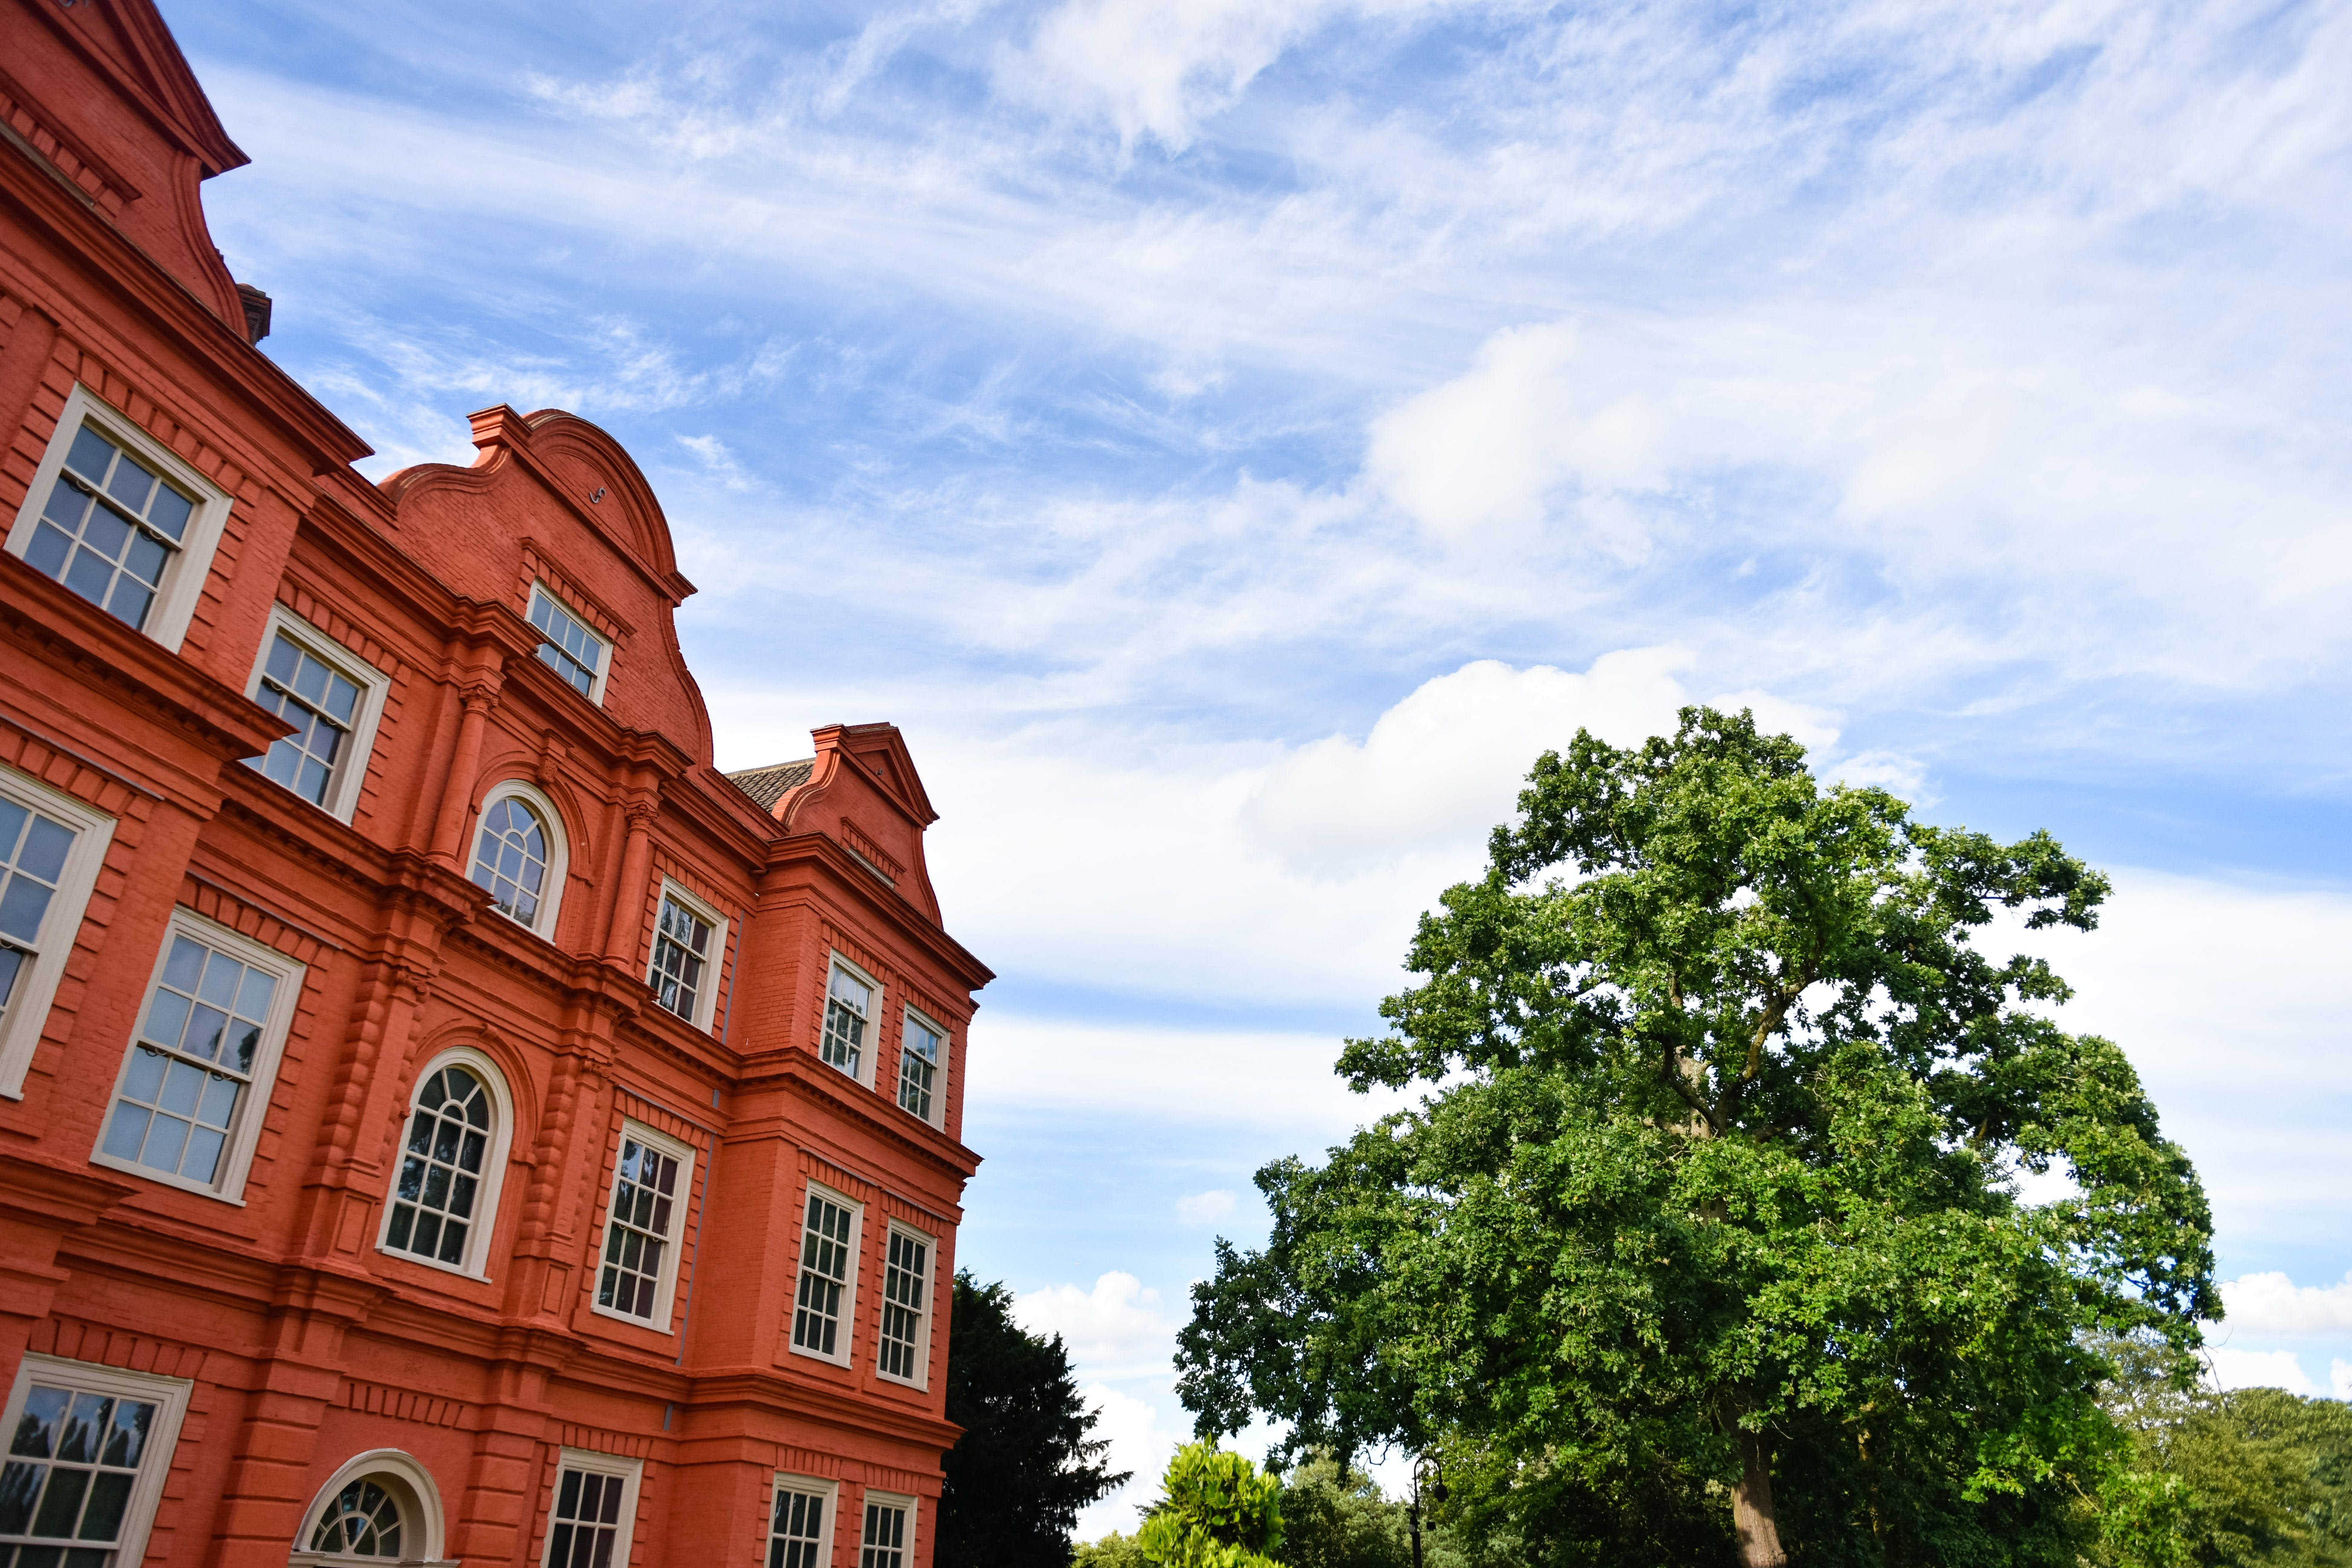 Kew Palace - Georgian architecture